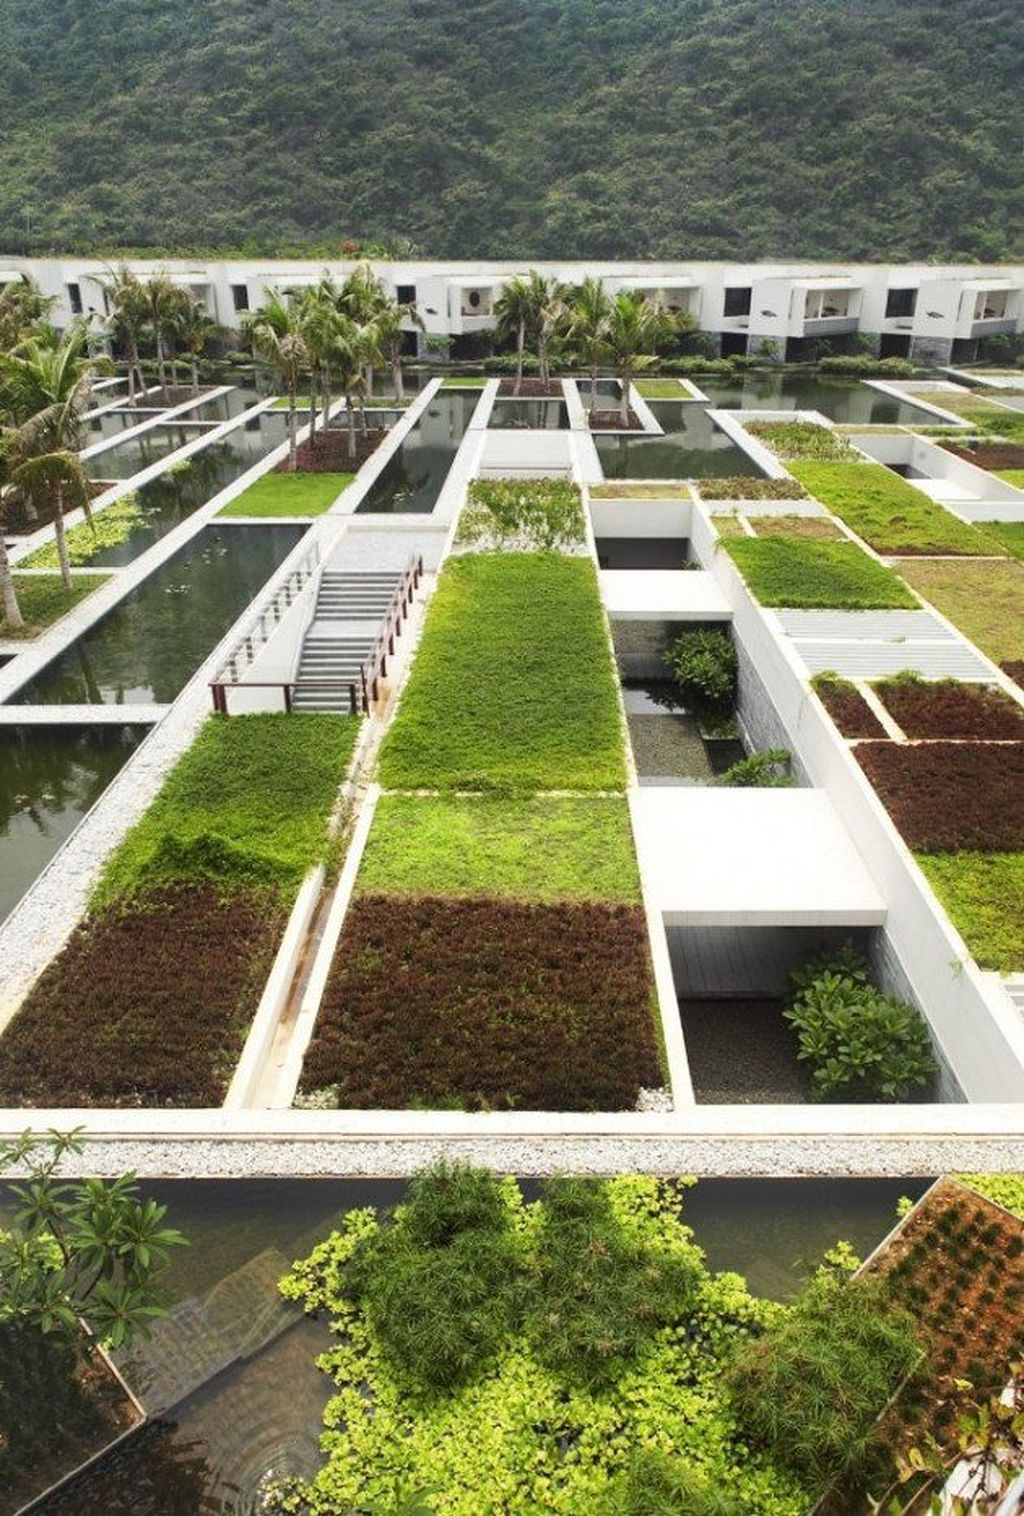 43 Green Roof Building Ideas And Why It Is Good For Our Planet ...